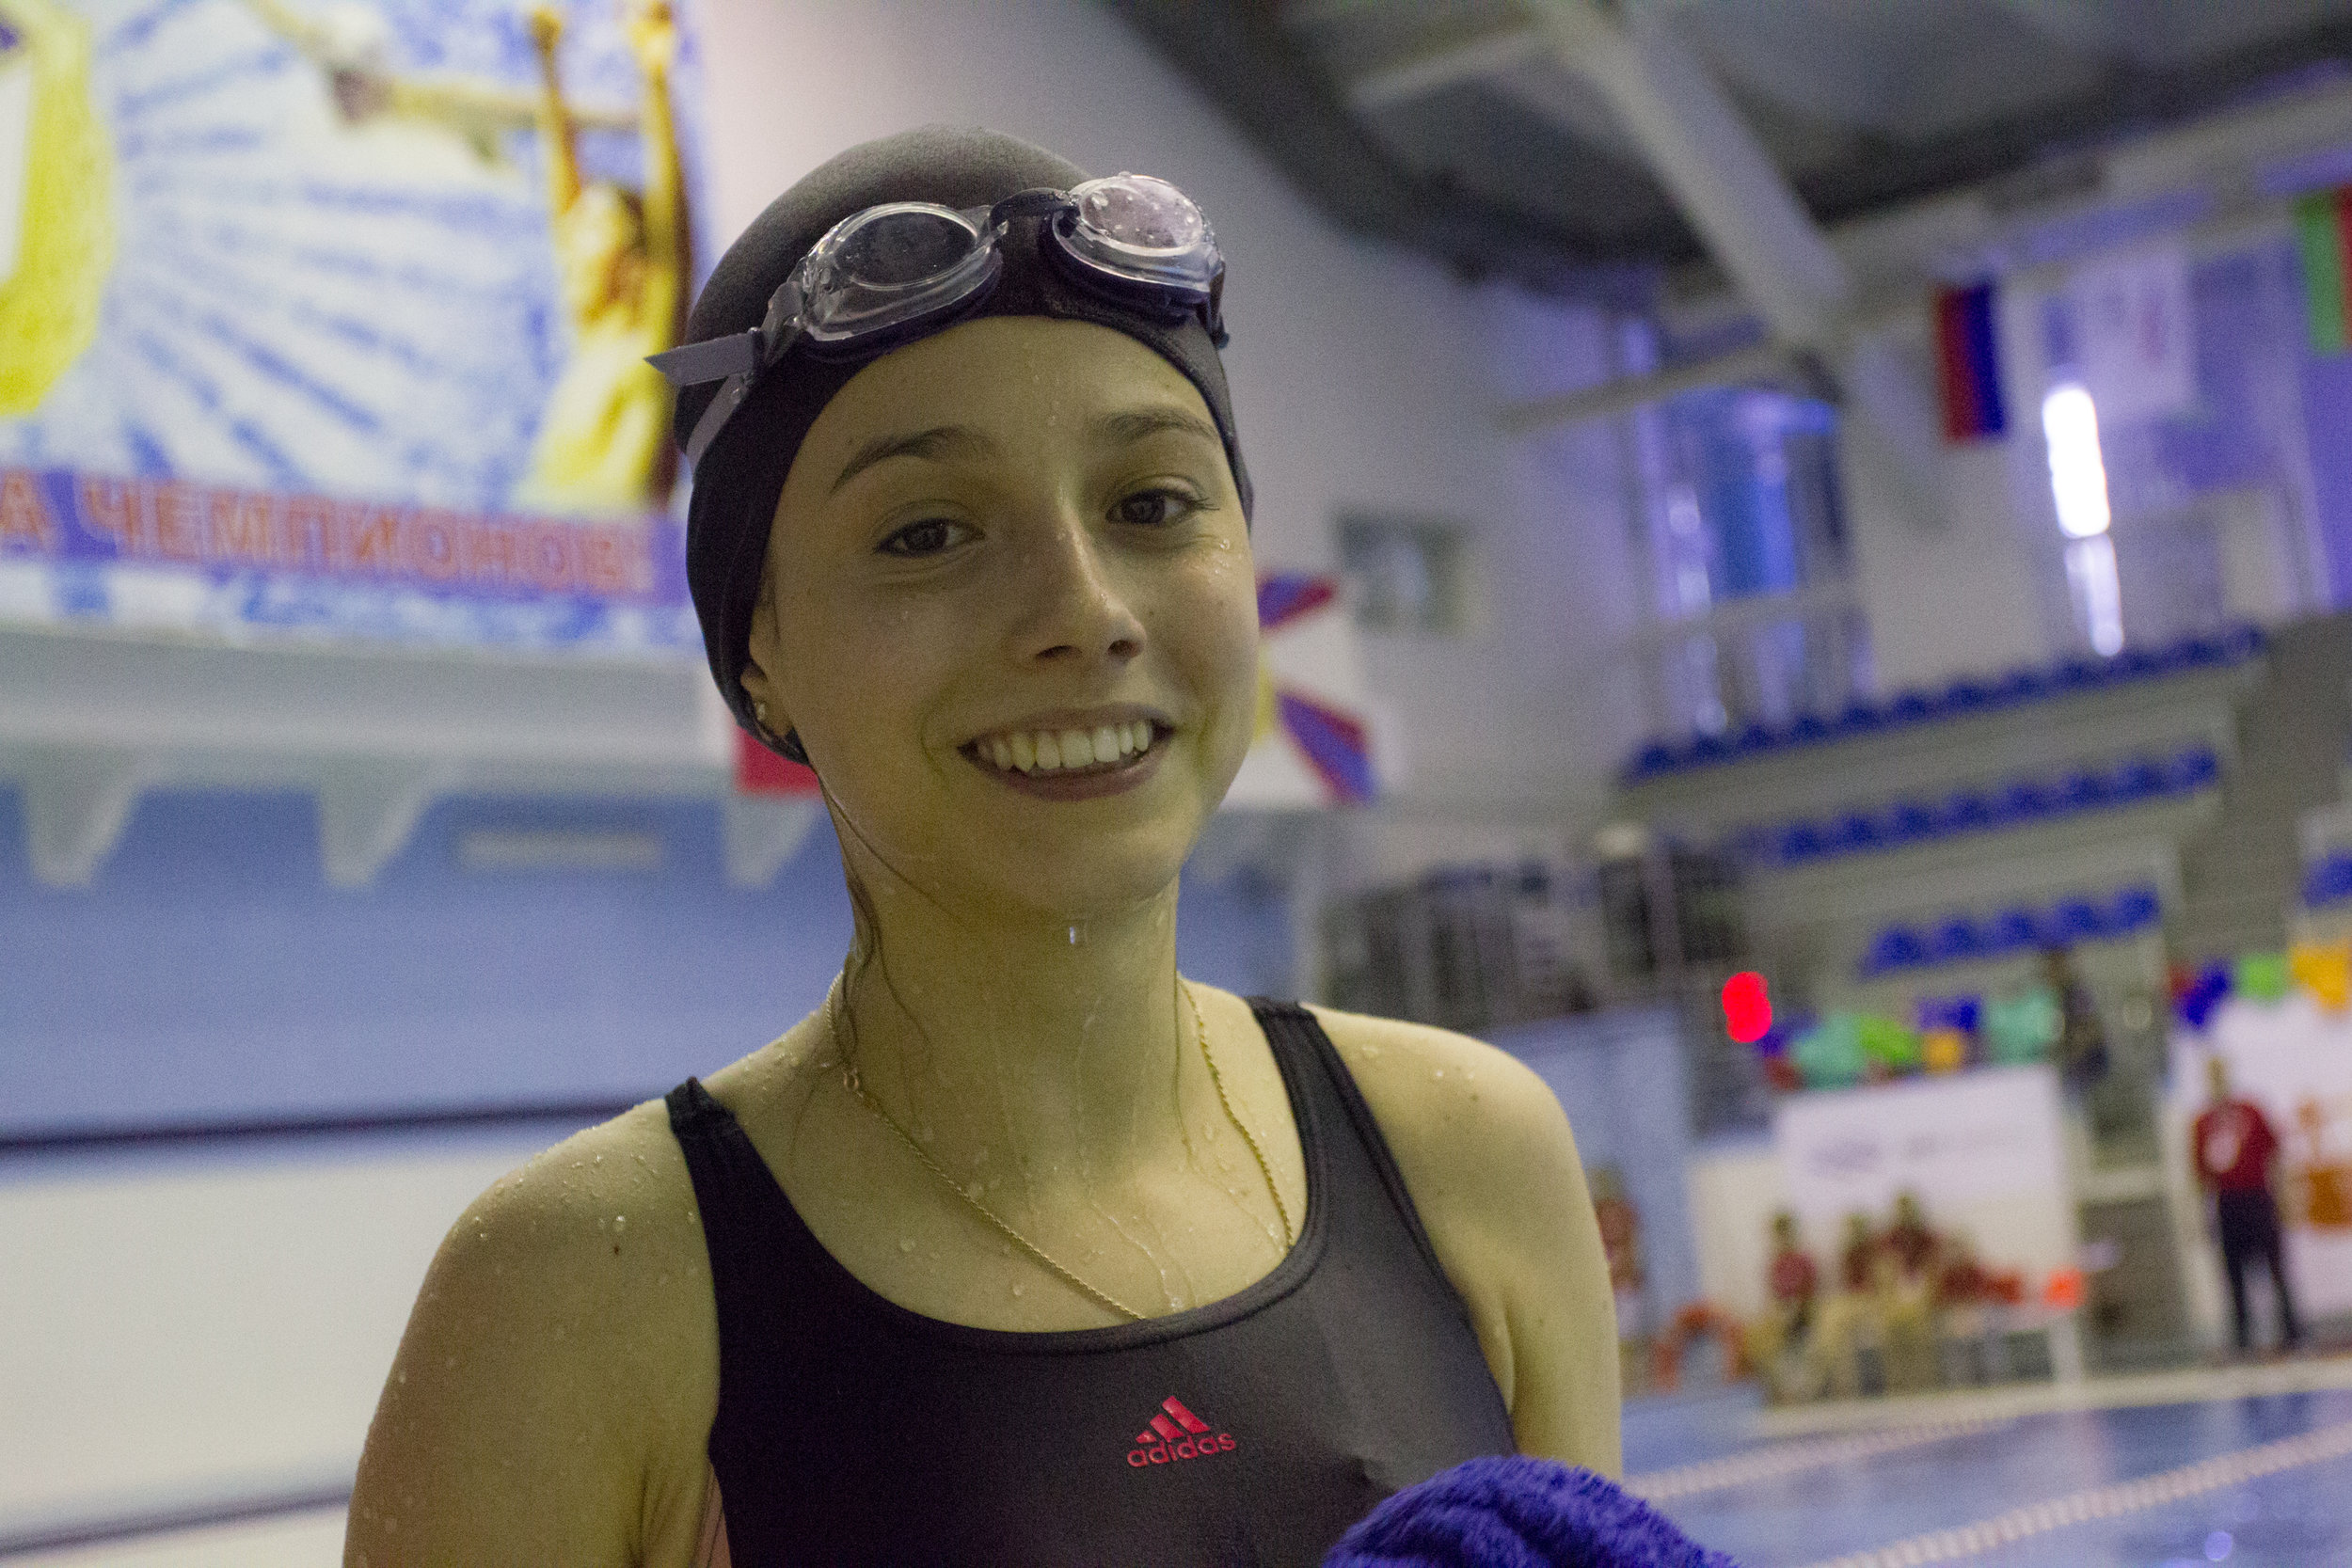 We congratulate Lera and wish her new victories in her life.